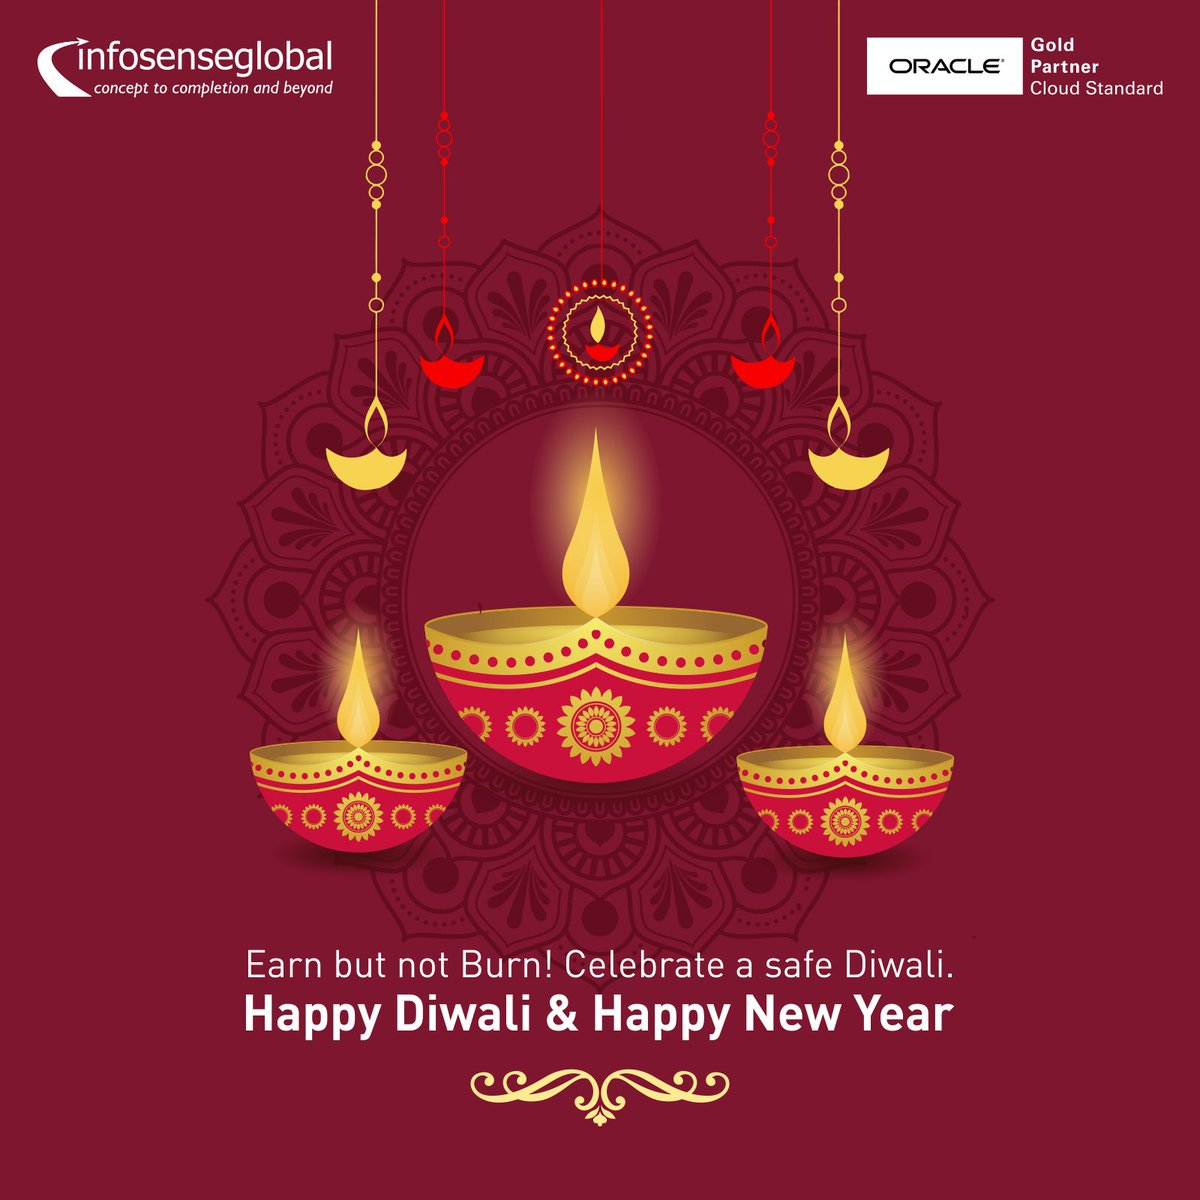 Happy New Year Diwali Images 68